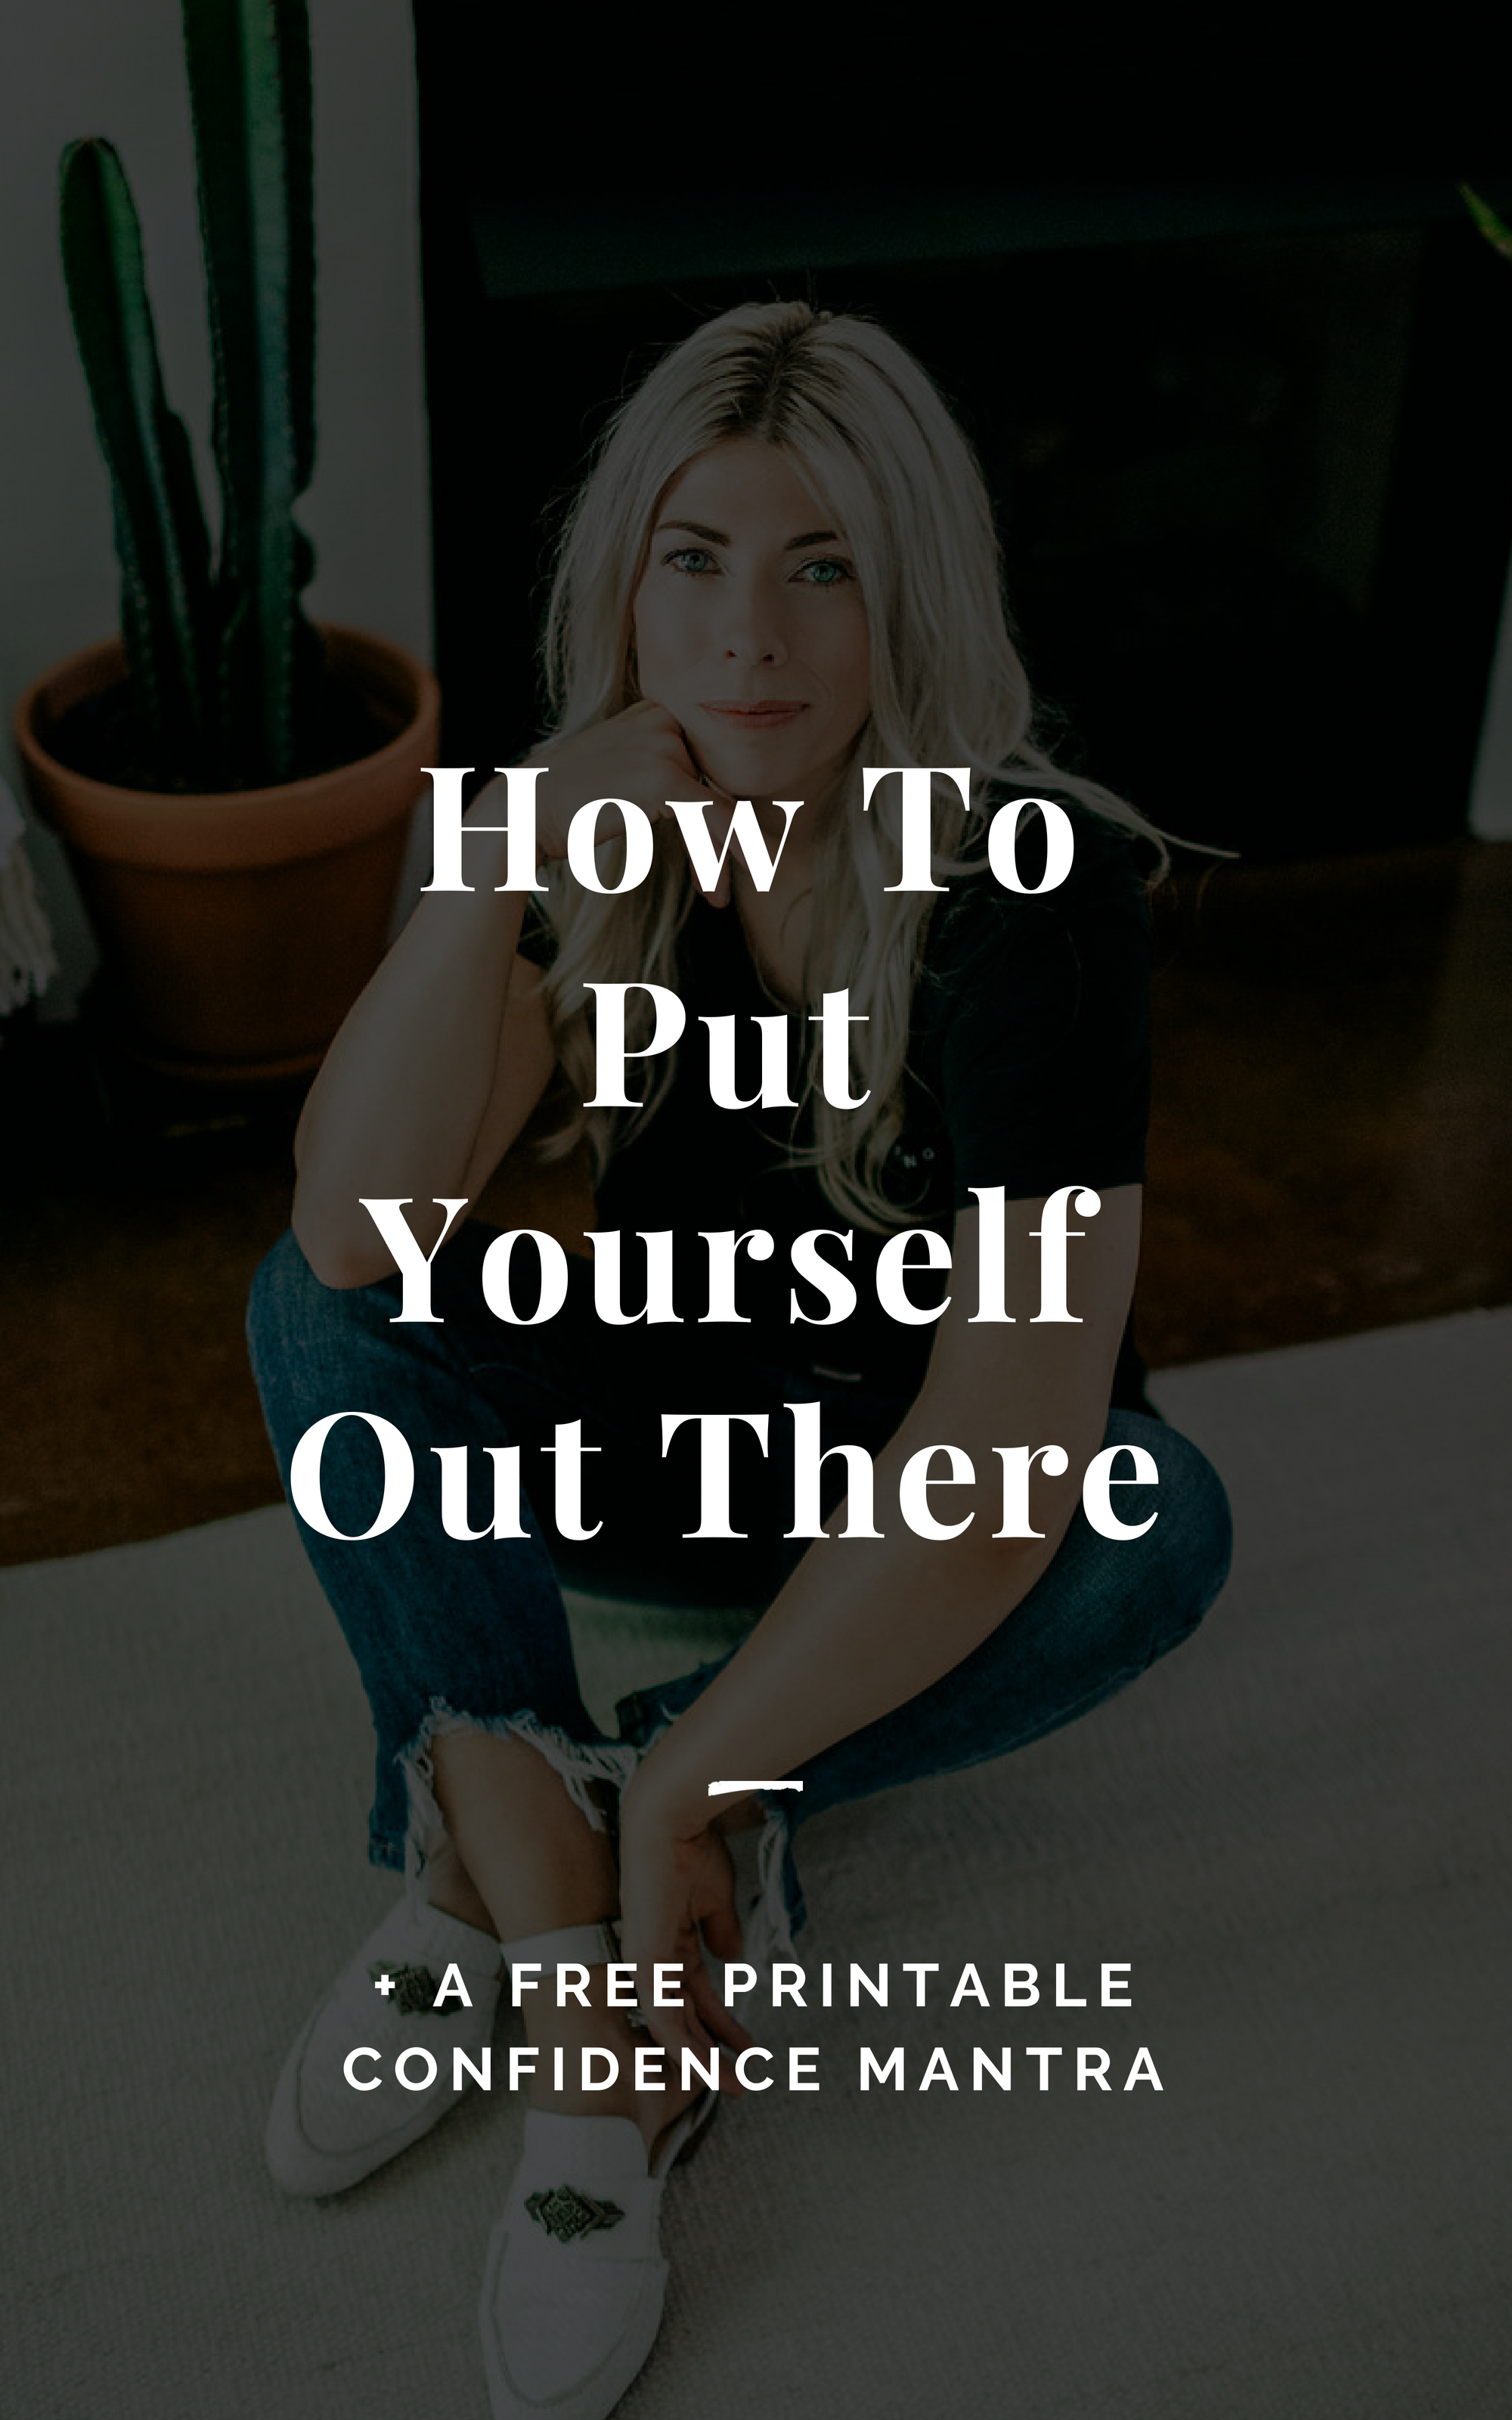 How to talk about what you do with confidence